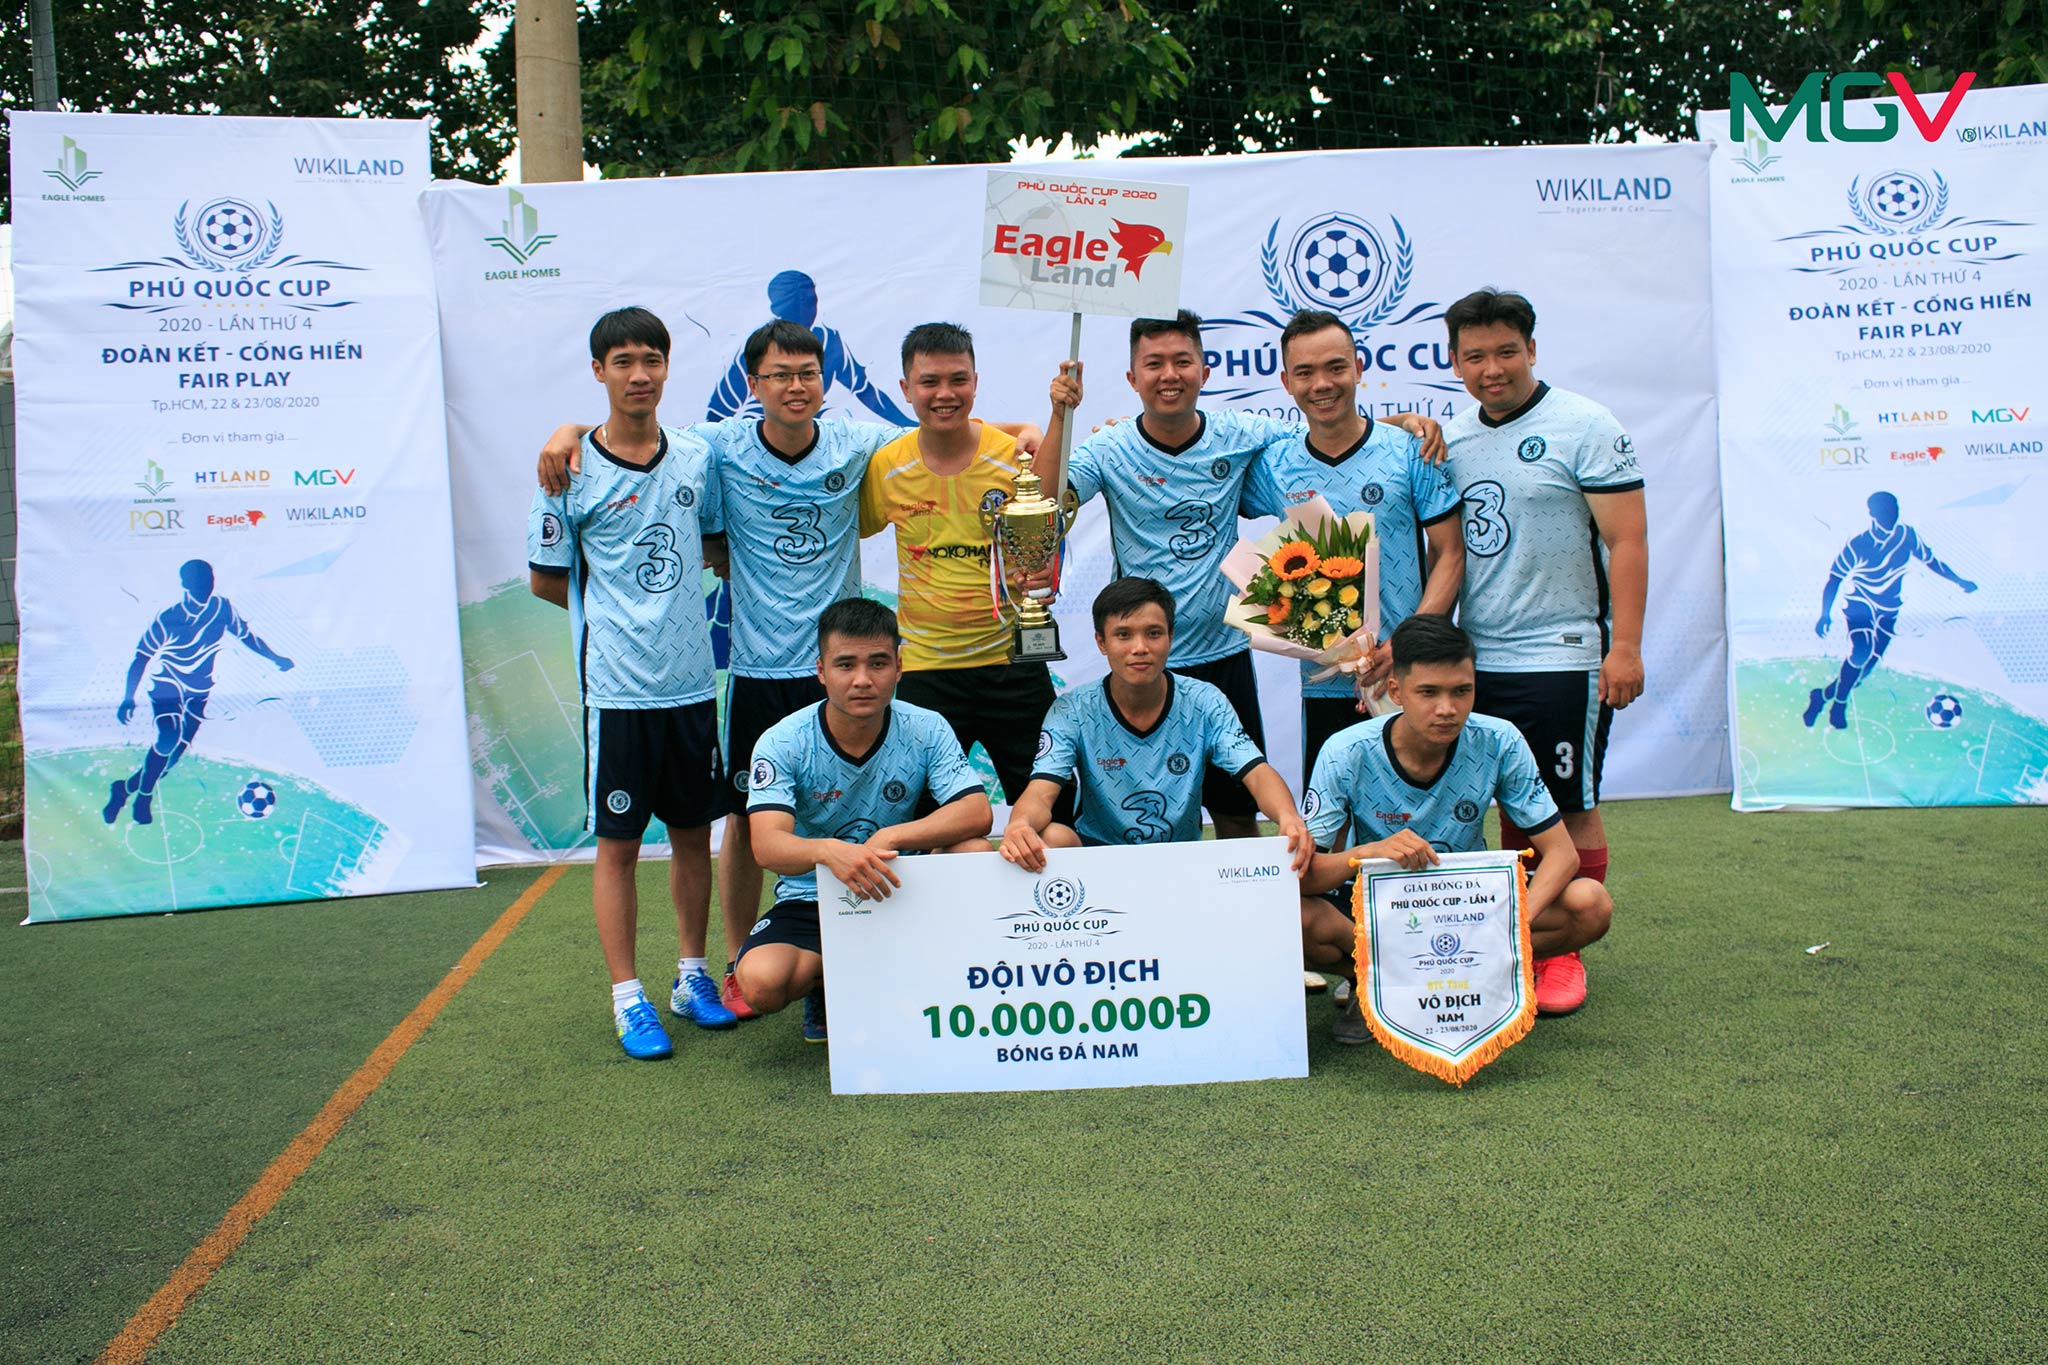 Phu Quoc Cup 5